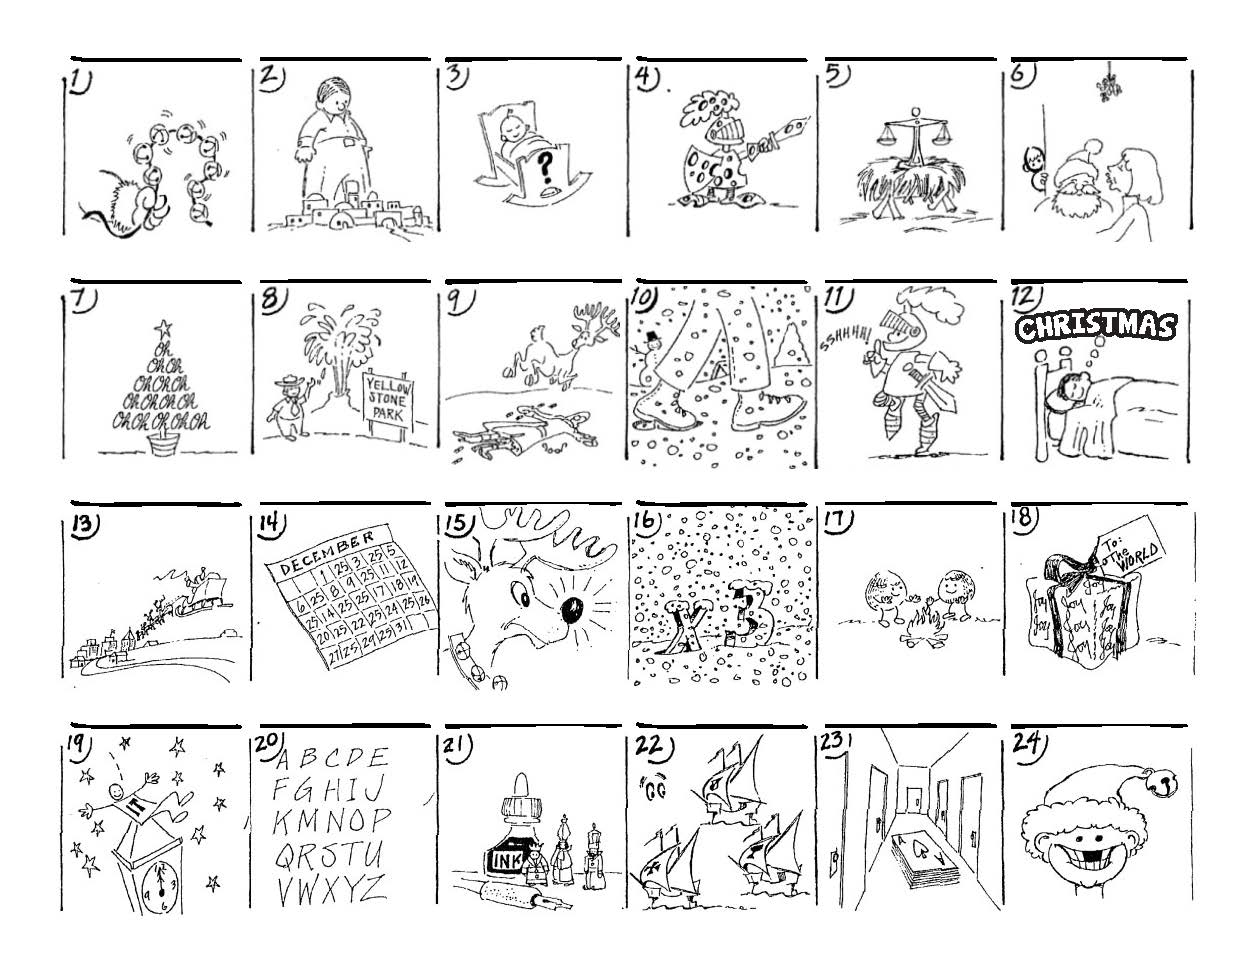 Christmas Carol Puzzles – The Button-Down Mind